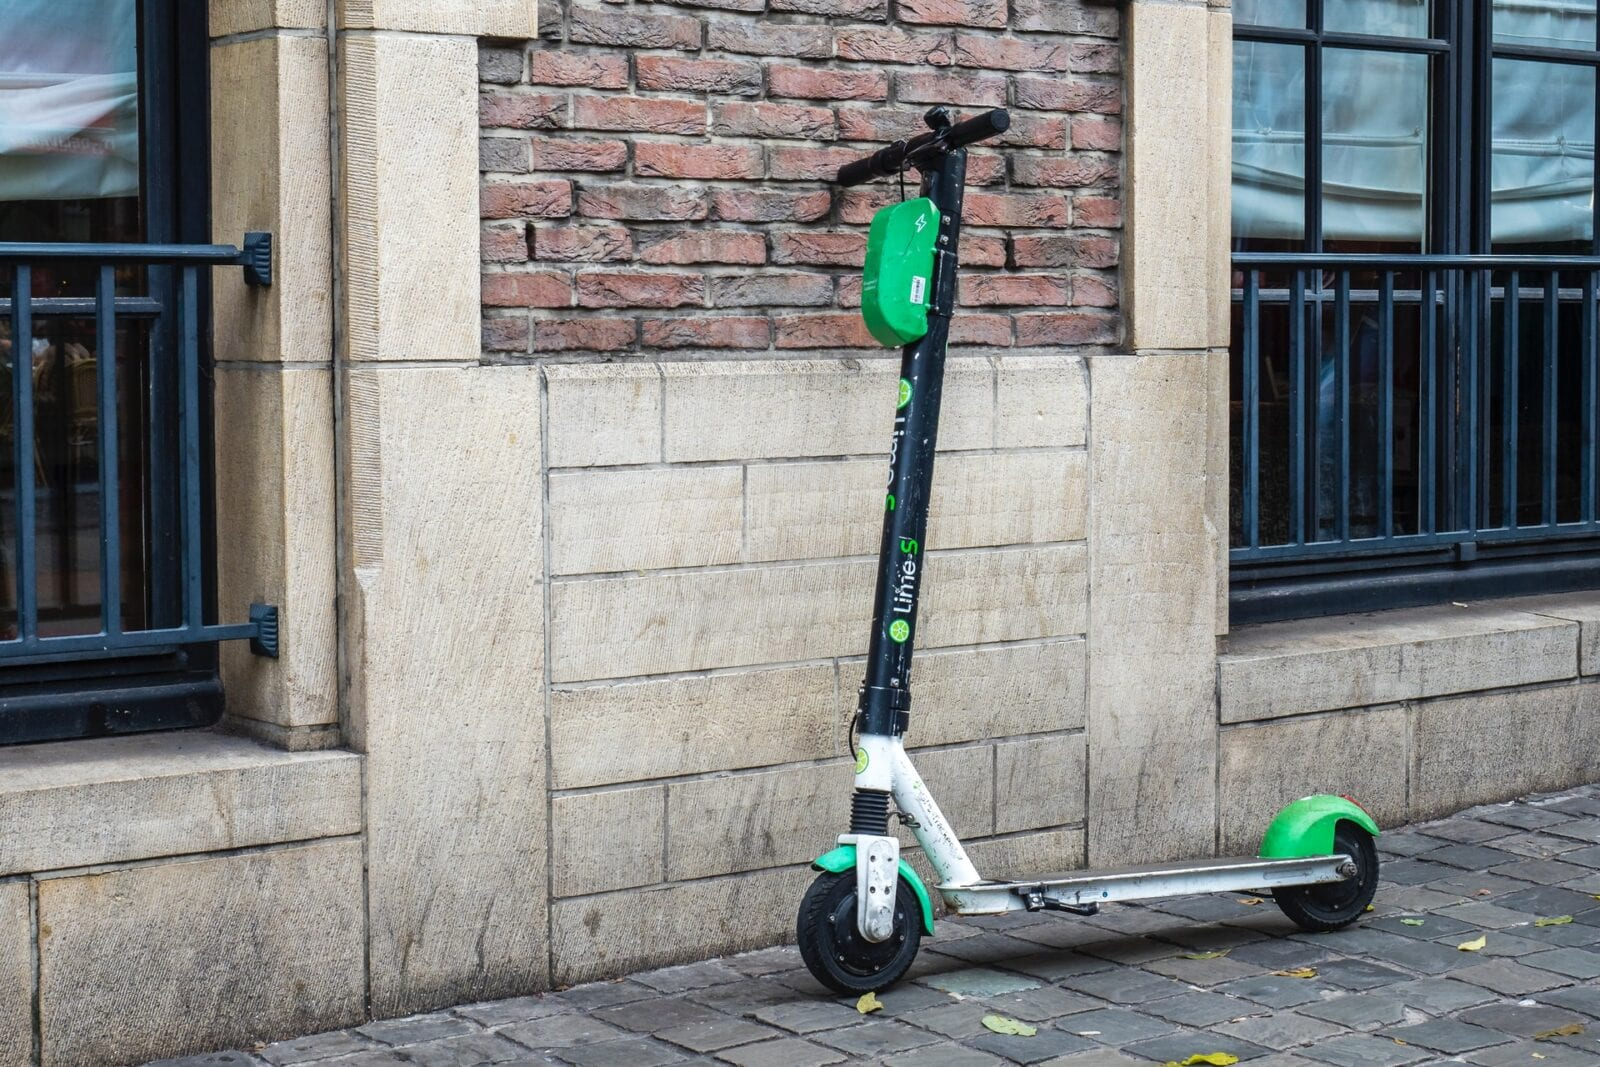 Hundreds of e-scooters coming to Rochdale for 12-month trial, The Manc